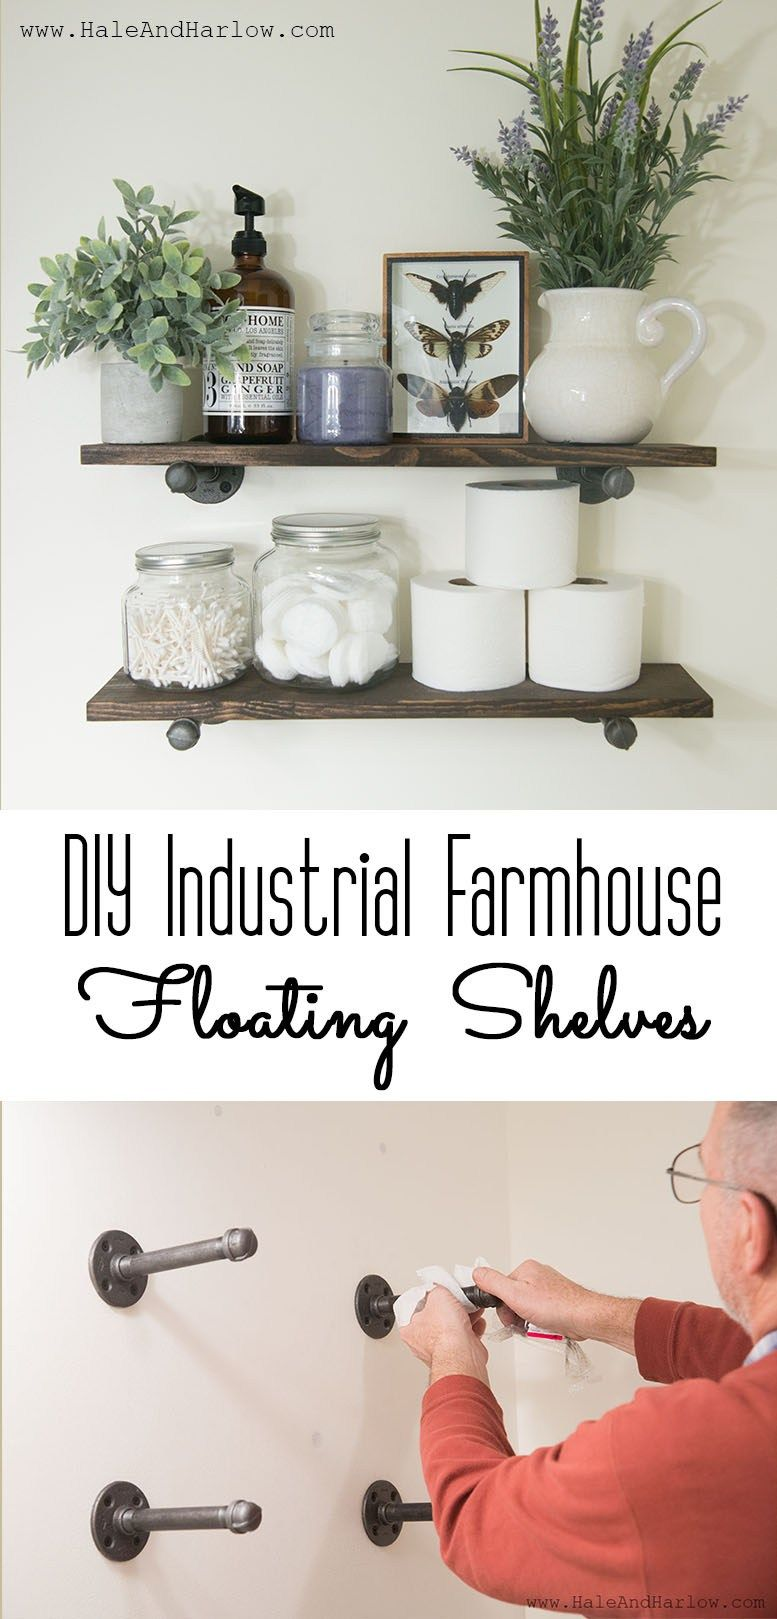 Diy Industrial Farmhouse Floating Shelves Awesome Tutorial Can 39 T Wait To Put One In The